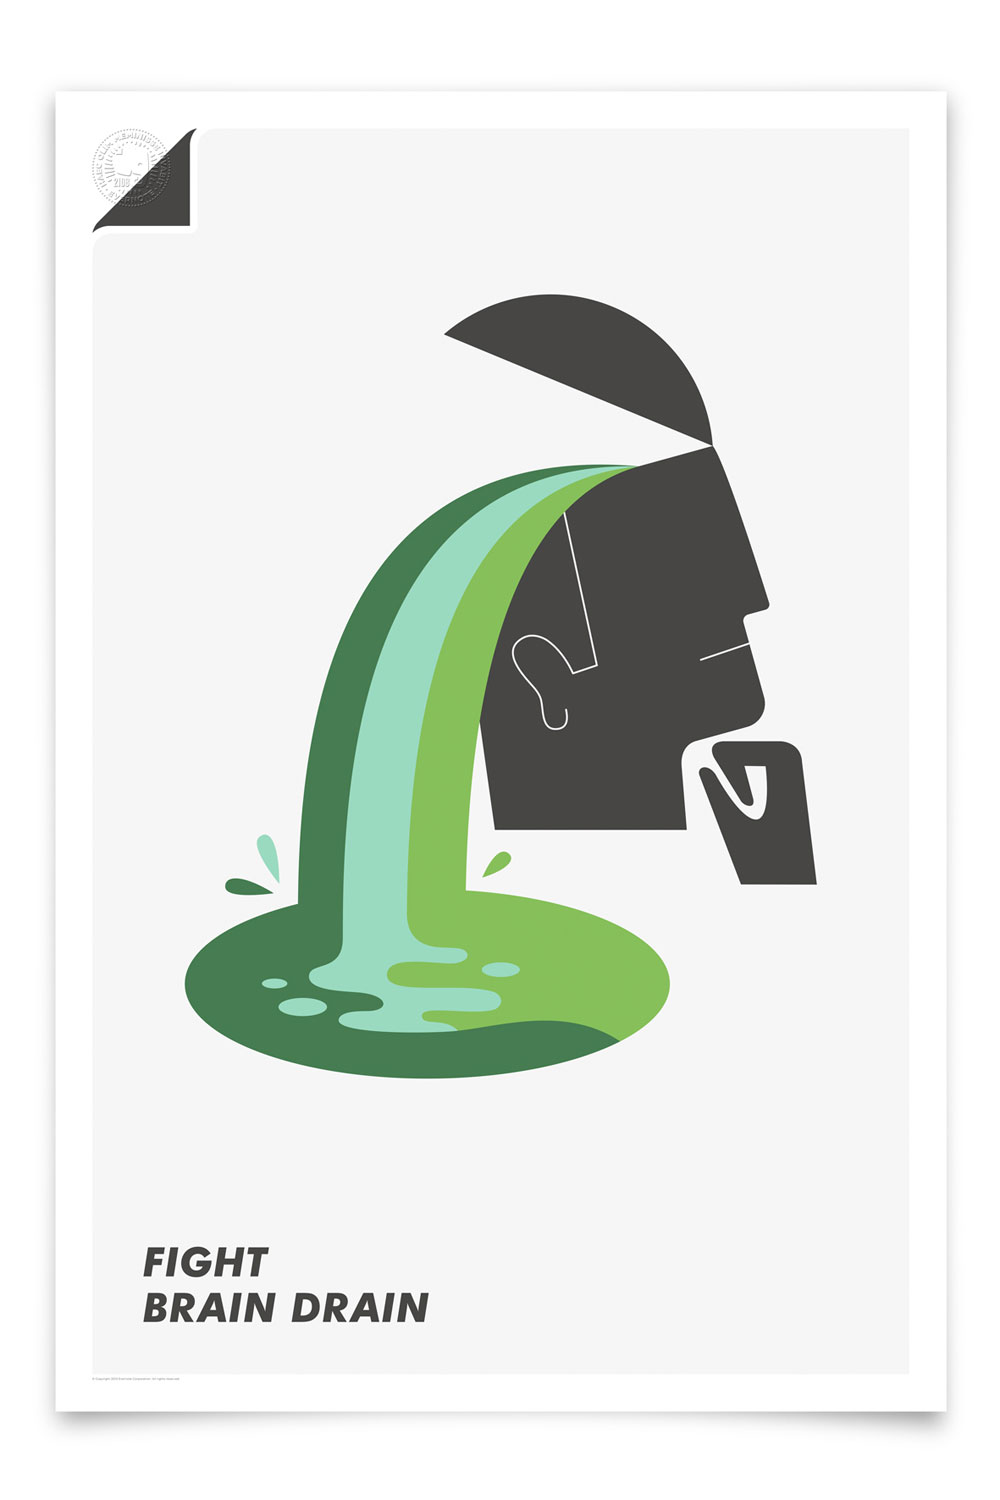 TY_150504_TDC_5_12Office_Evernote_Poster_6B